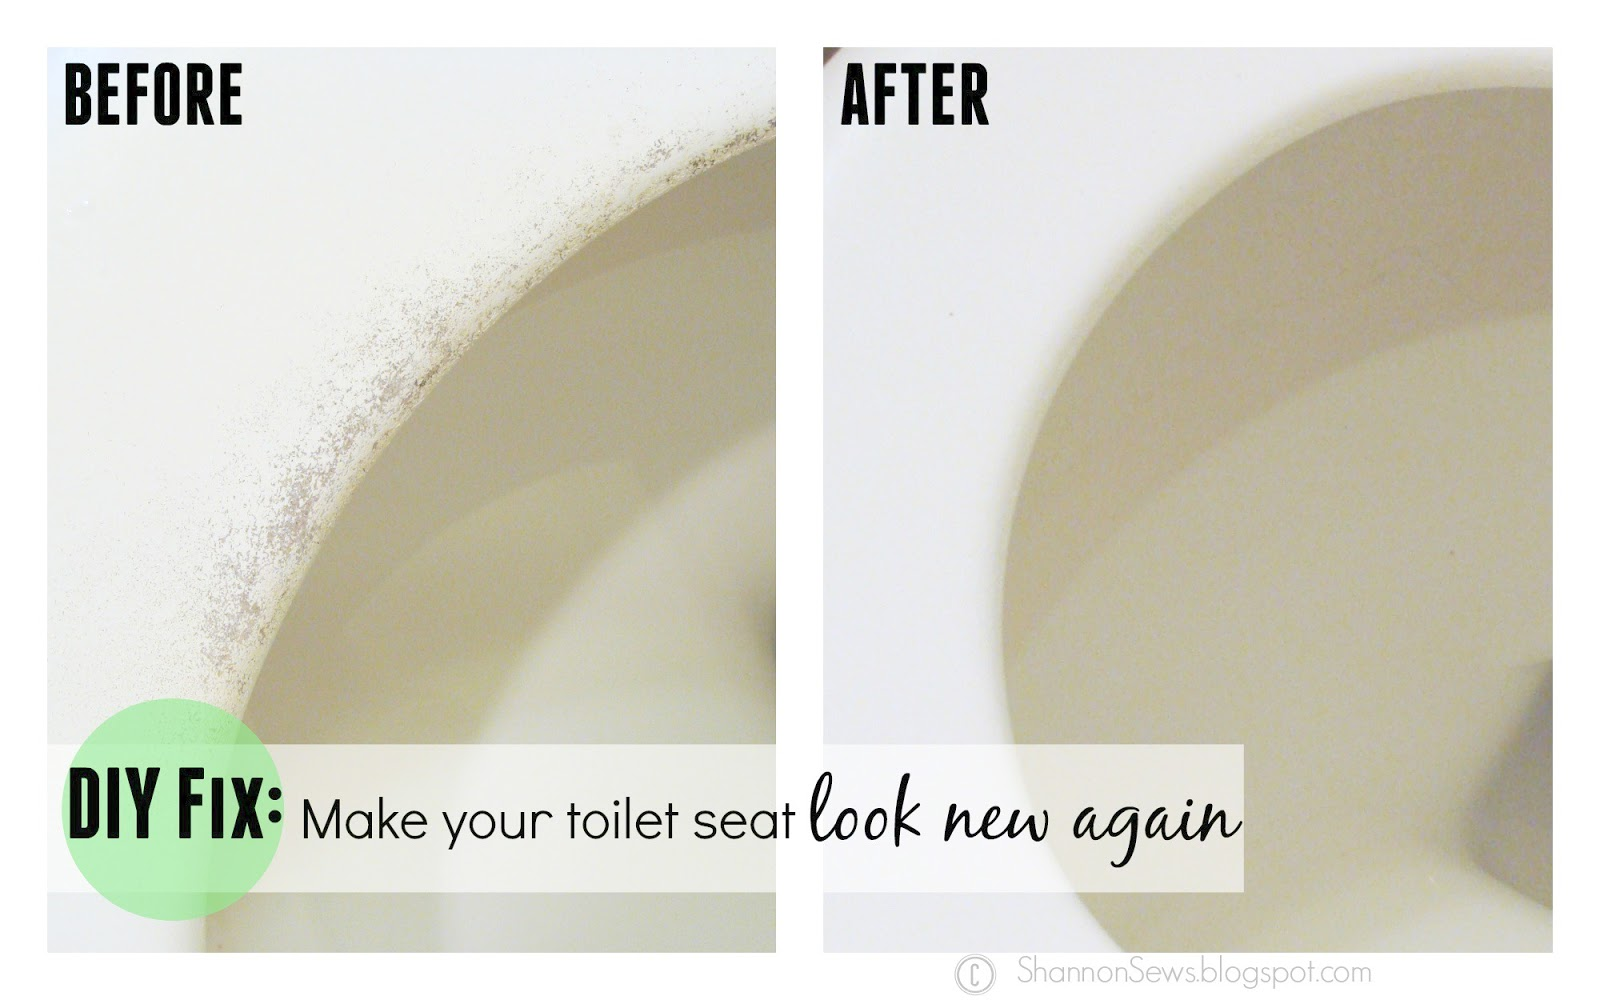 diy toilet fix paint toilet seat get rid of marks look new again